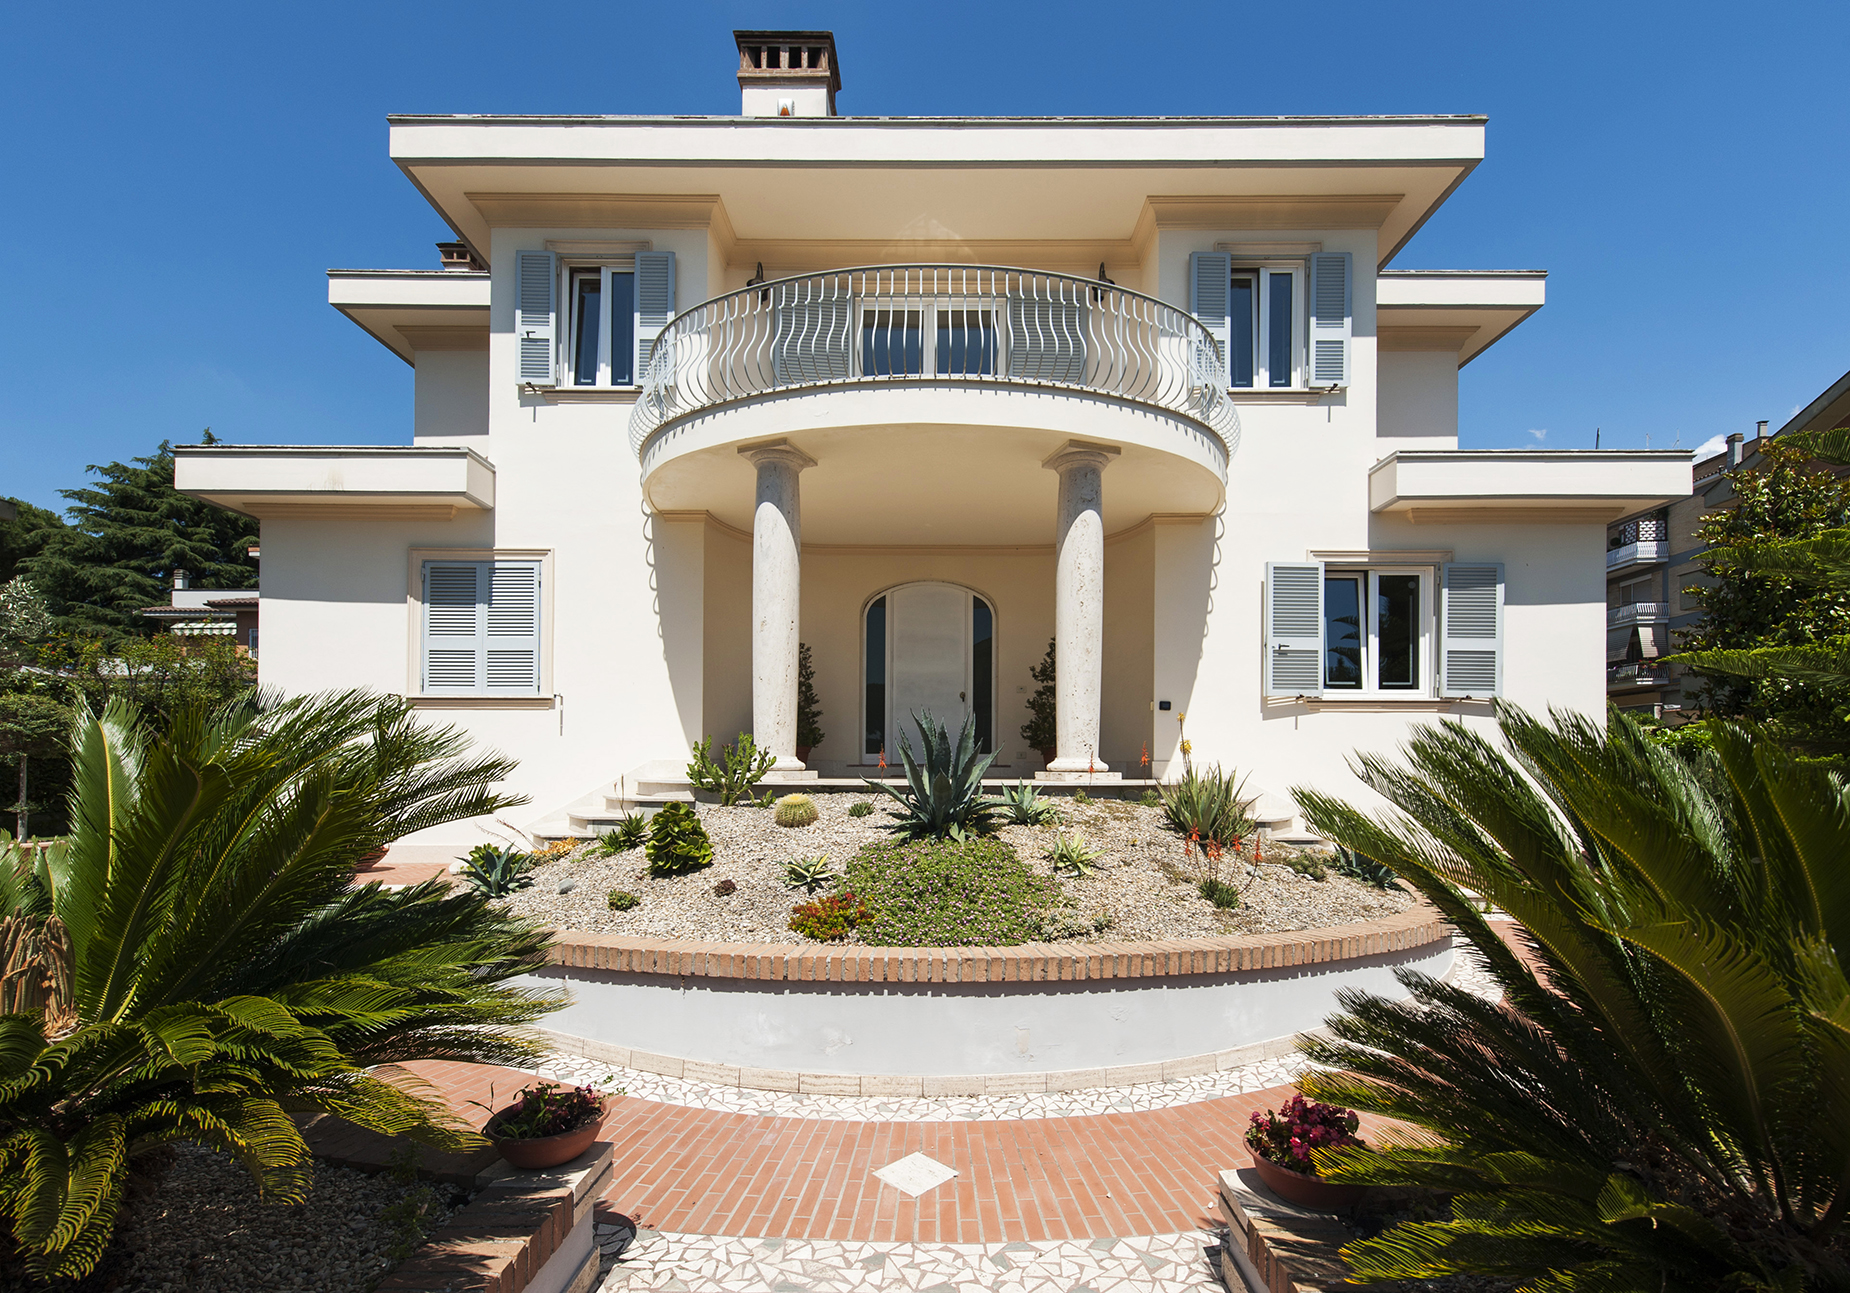 Single Family Home for Sale at Villa in Liberty style recently built Rome, Rome Italy